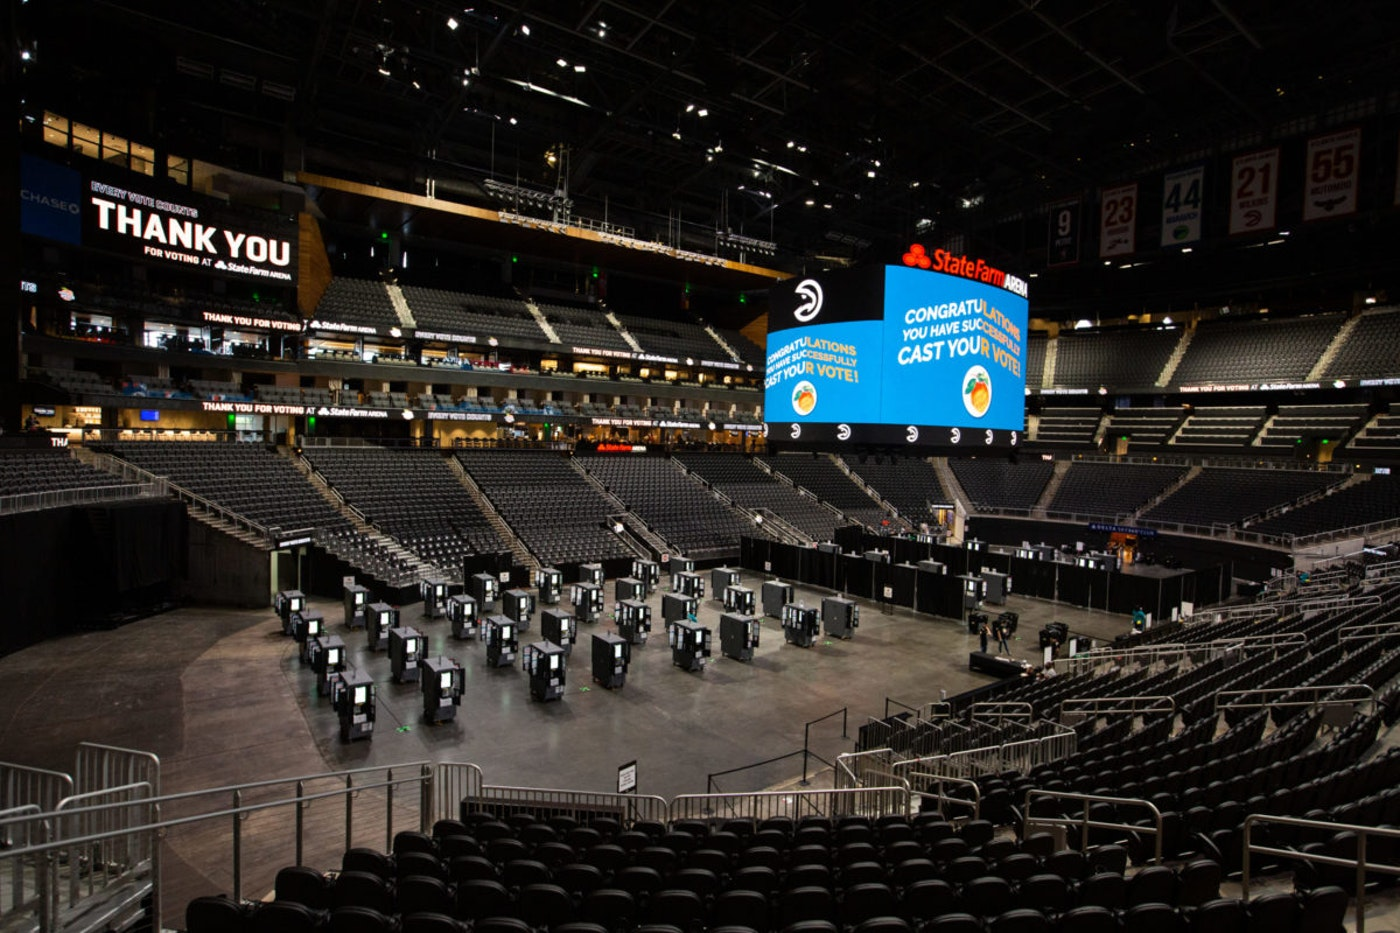 State Farm Arena, in Atlanta, Ga., is just one of dozens of major sports venues across the country that have become large early voting centers. (Photo by Jessica McGowan/Getty Images)